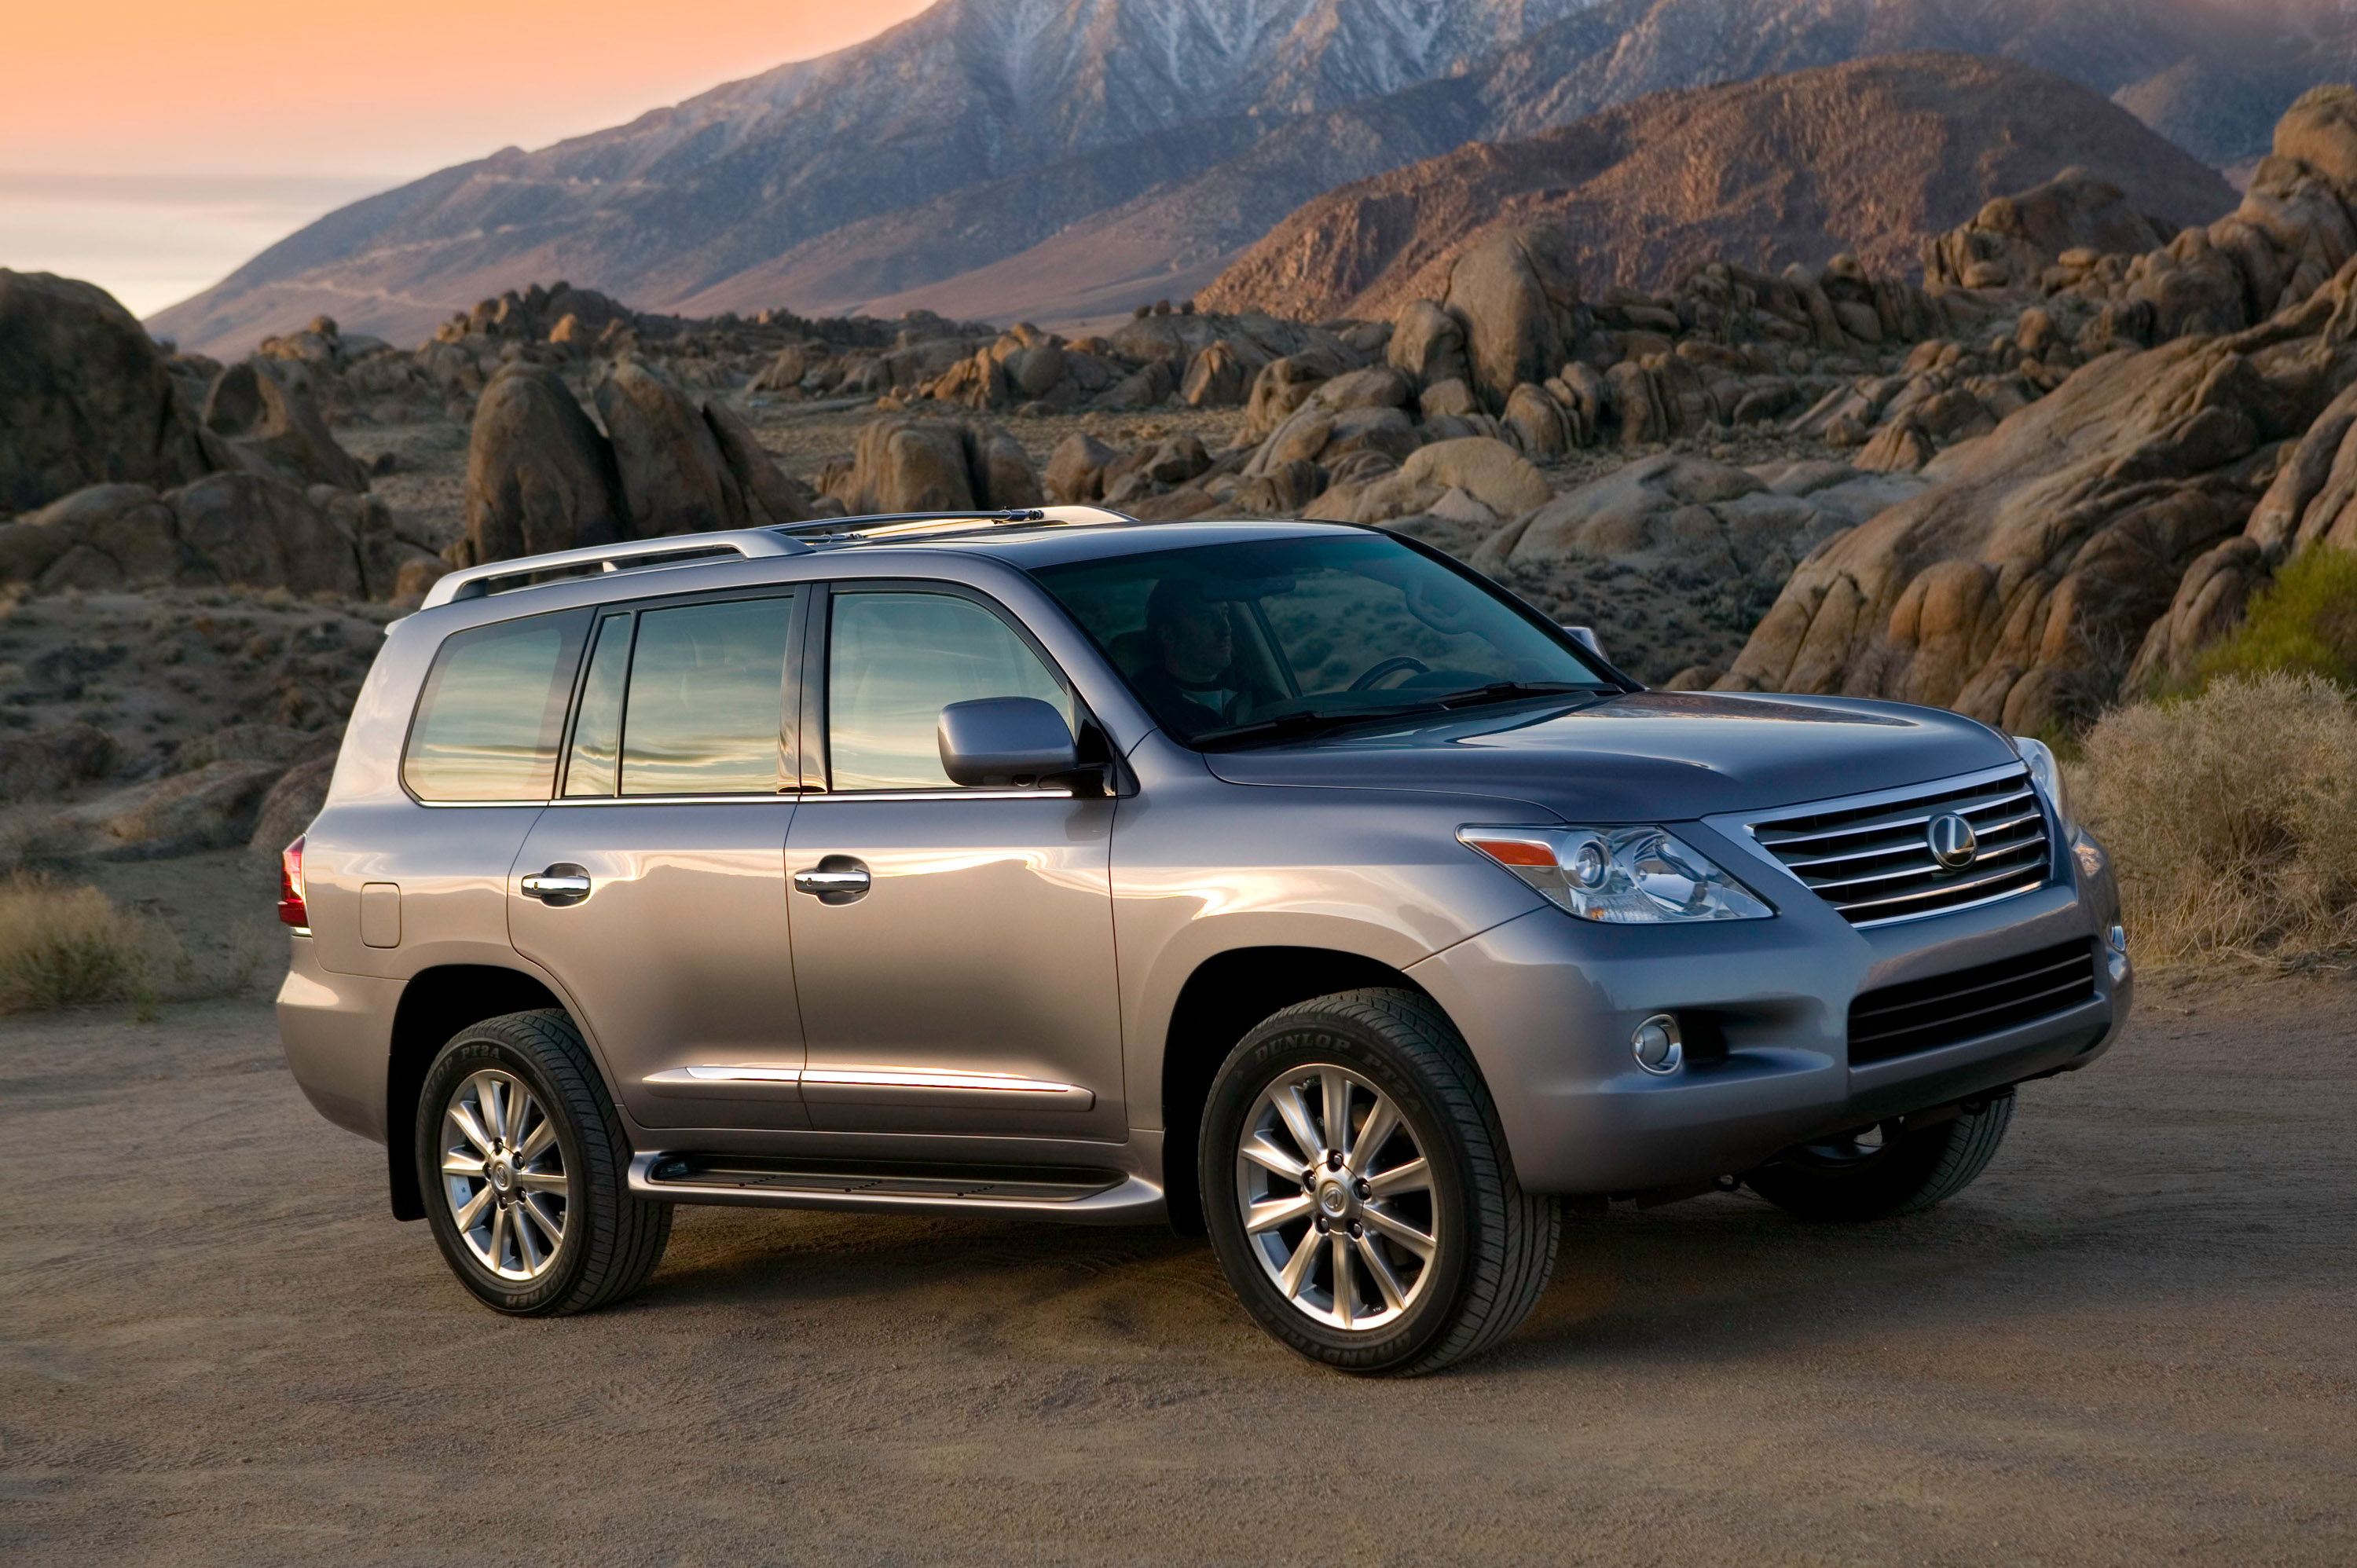 2010 Lexus LX 570 packs new features and vision